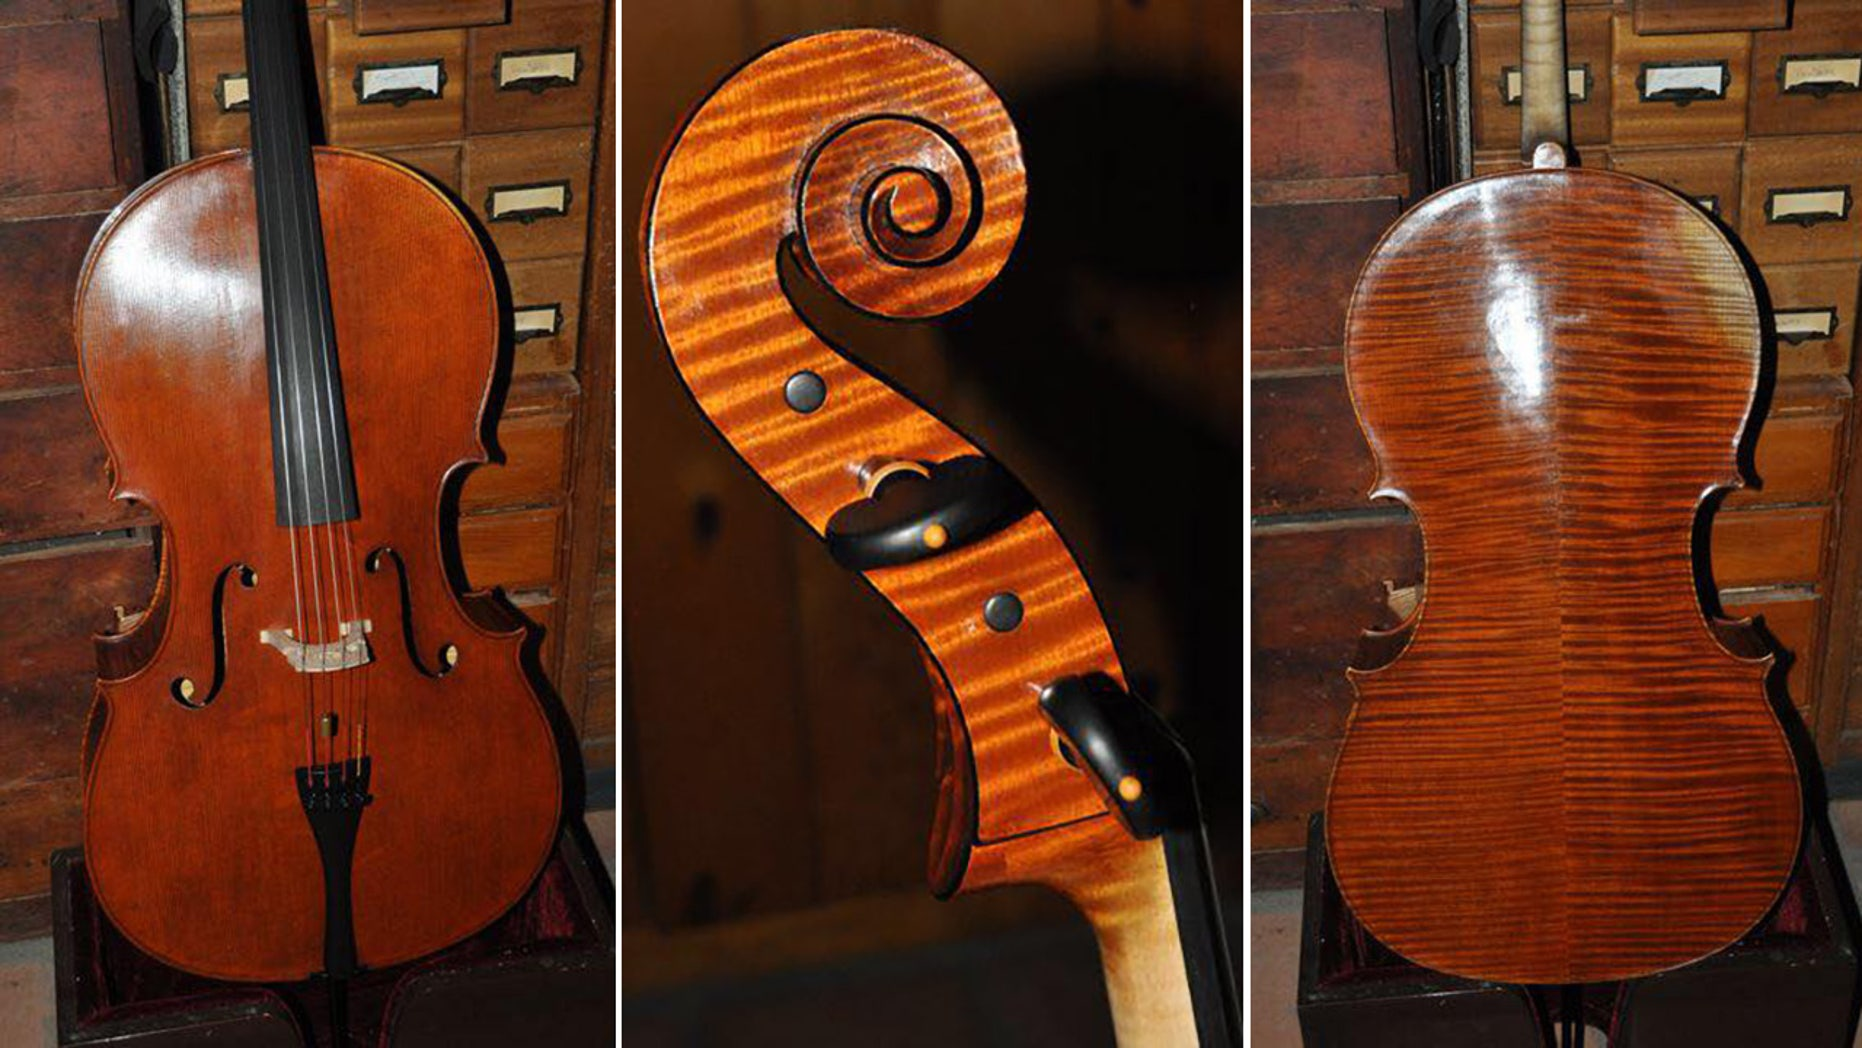 A custom cello valued at $100,000 was stolen Wednesday from the San Diego hotel room of a prominent Los Angeles Opera musician.